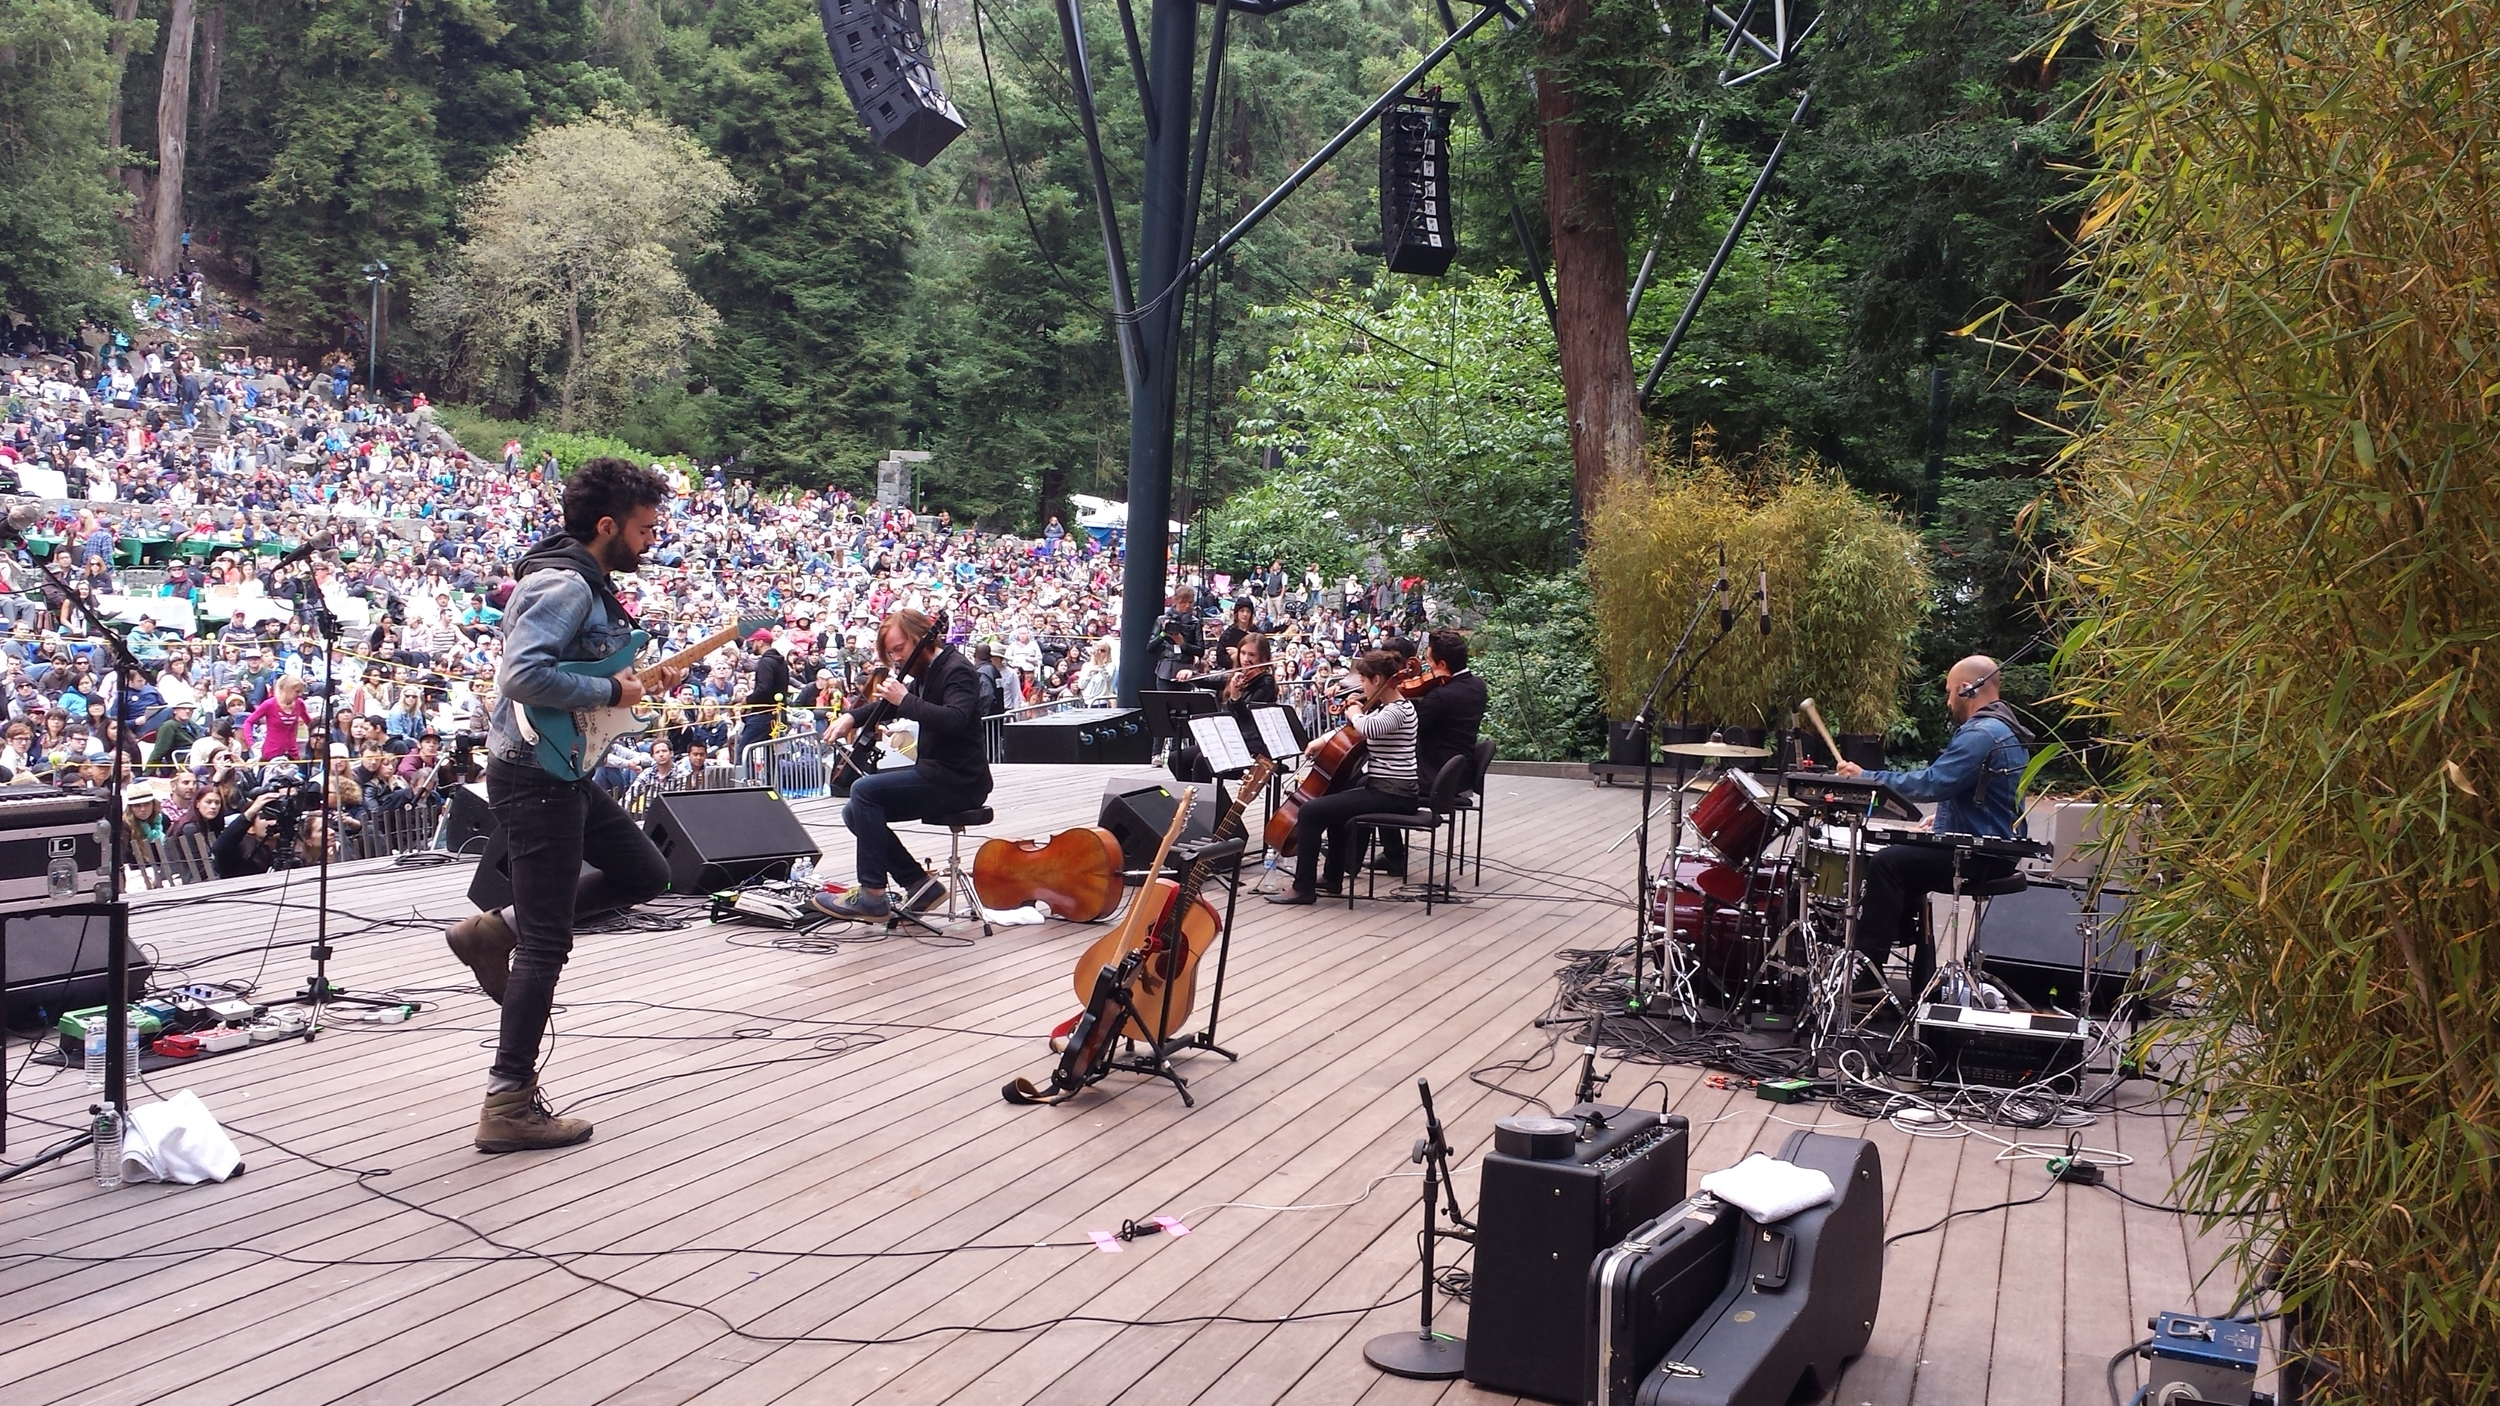 In July 2013, Magik*Magik backs up  GEOGRAPHER  at the Stern Grove Festival, opening for the  KRONOS QUARTET.